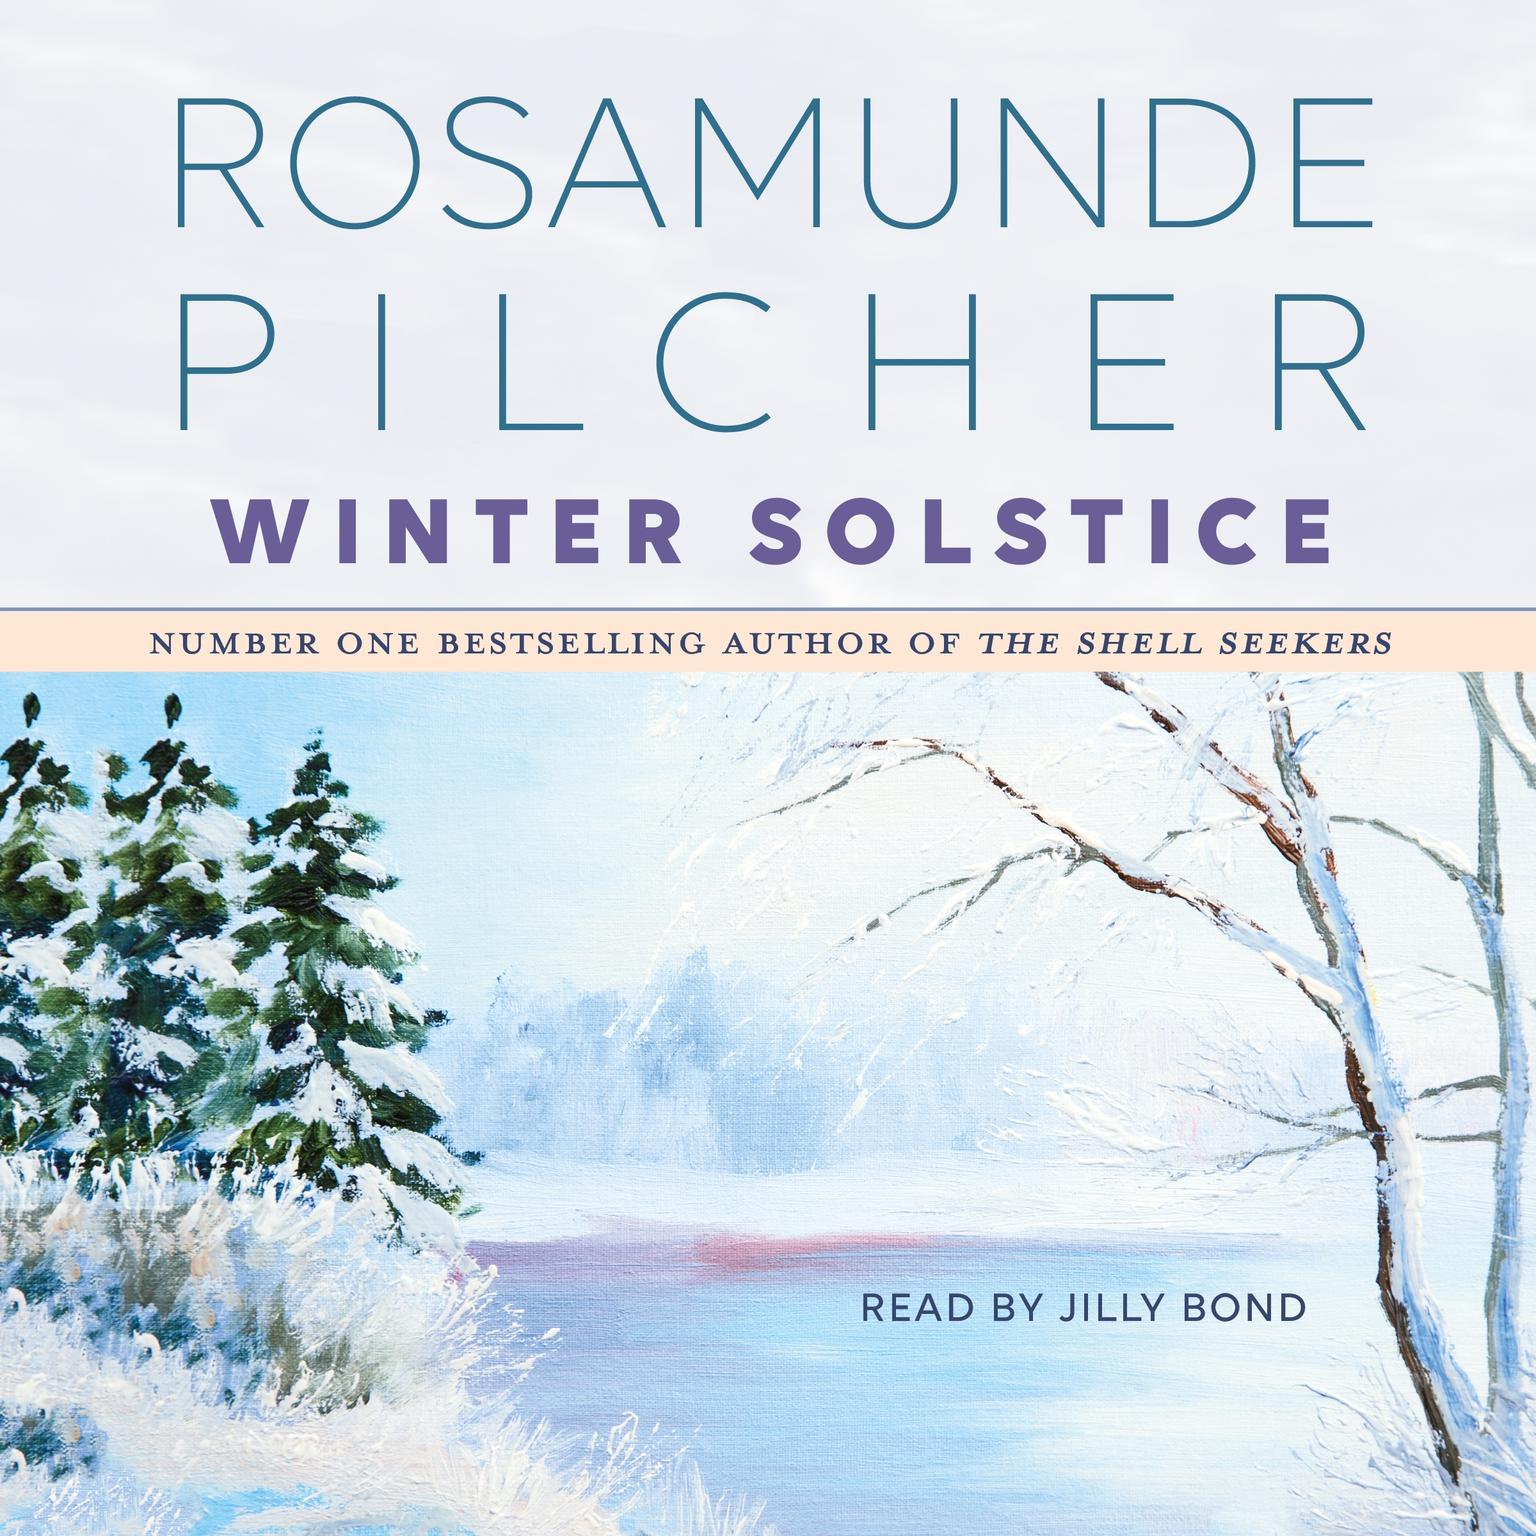 Printable Winter Solstice Audiobook Cover Art